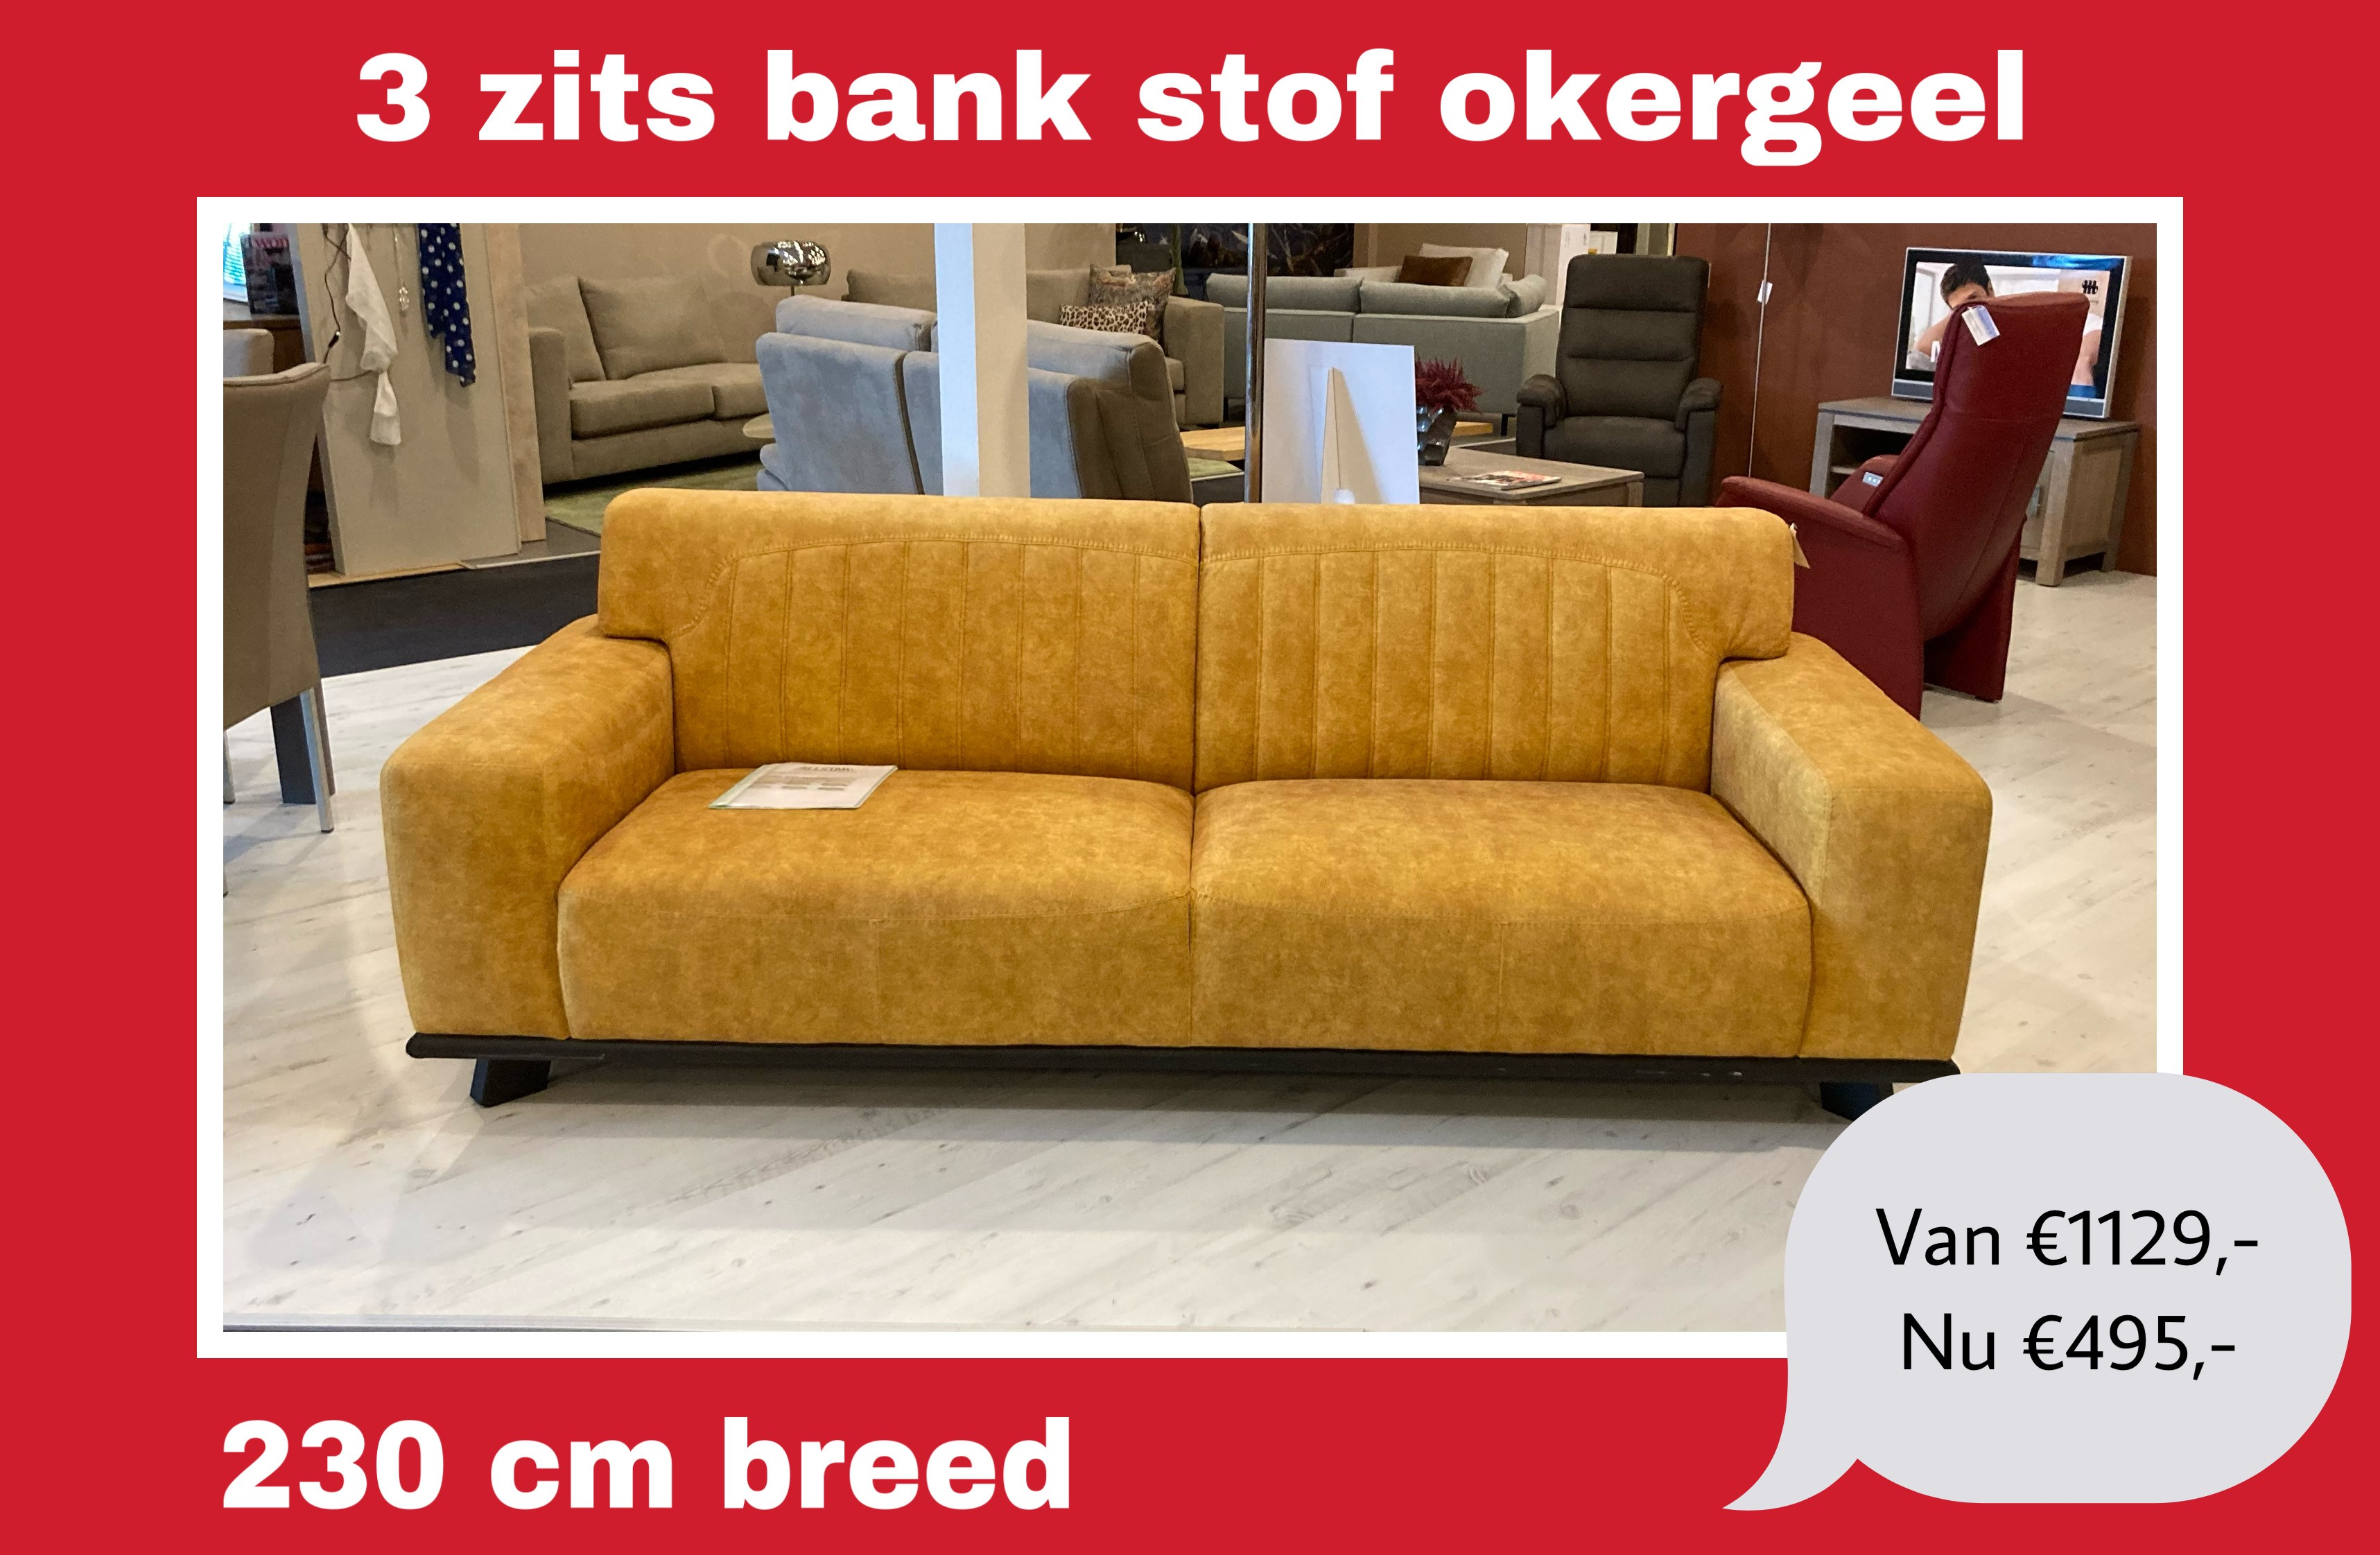 Uitverkoop showroom model 3-zits bank okergeel